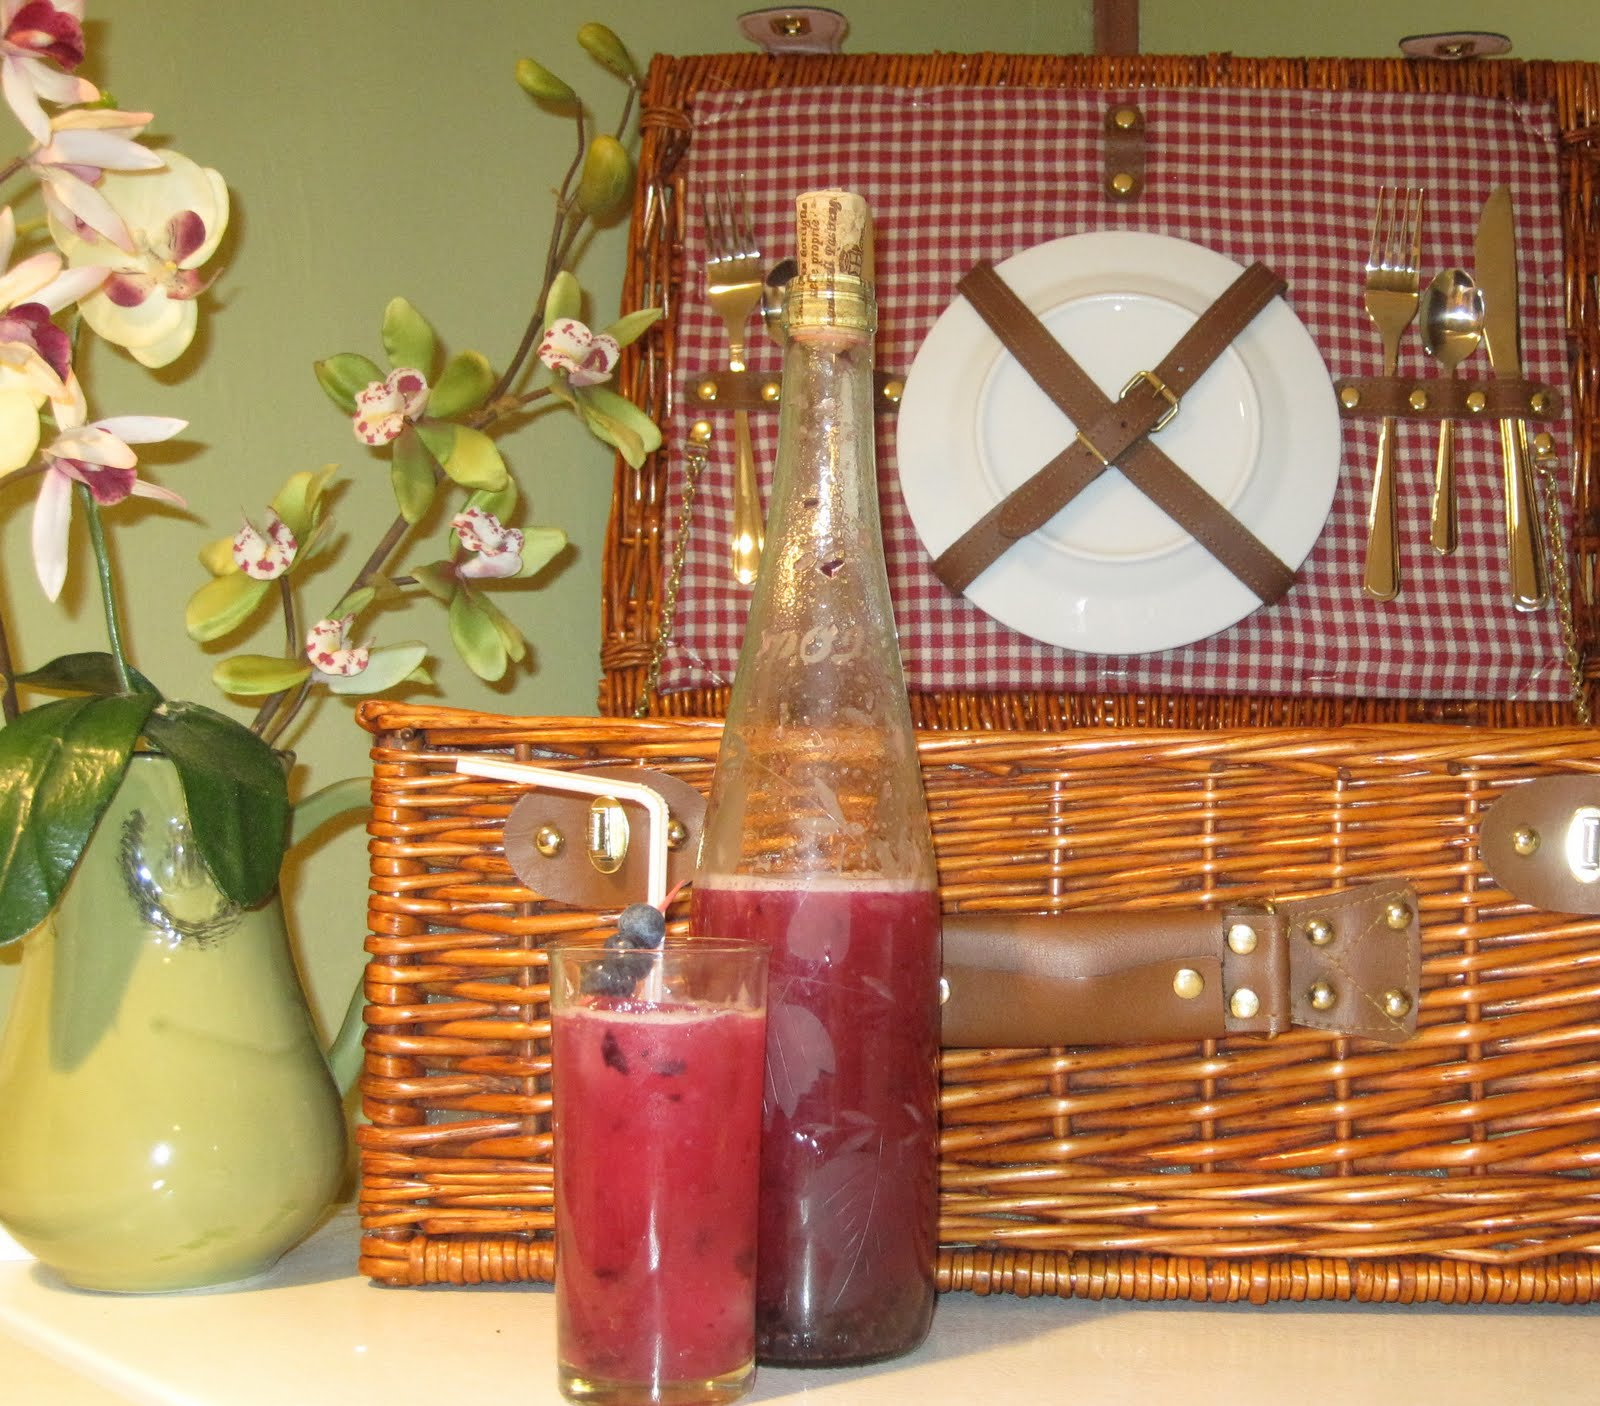 ... The Thin Lady Sings: Stevia Sweetened Blueberry Lavender Lemonade